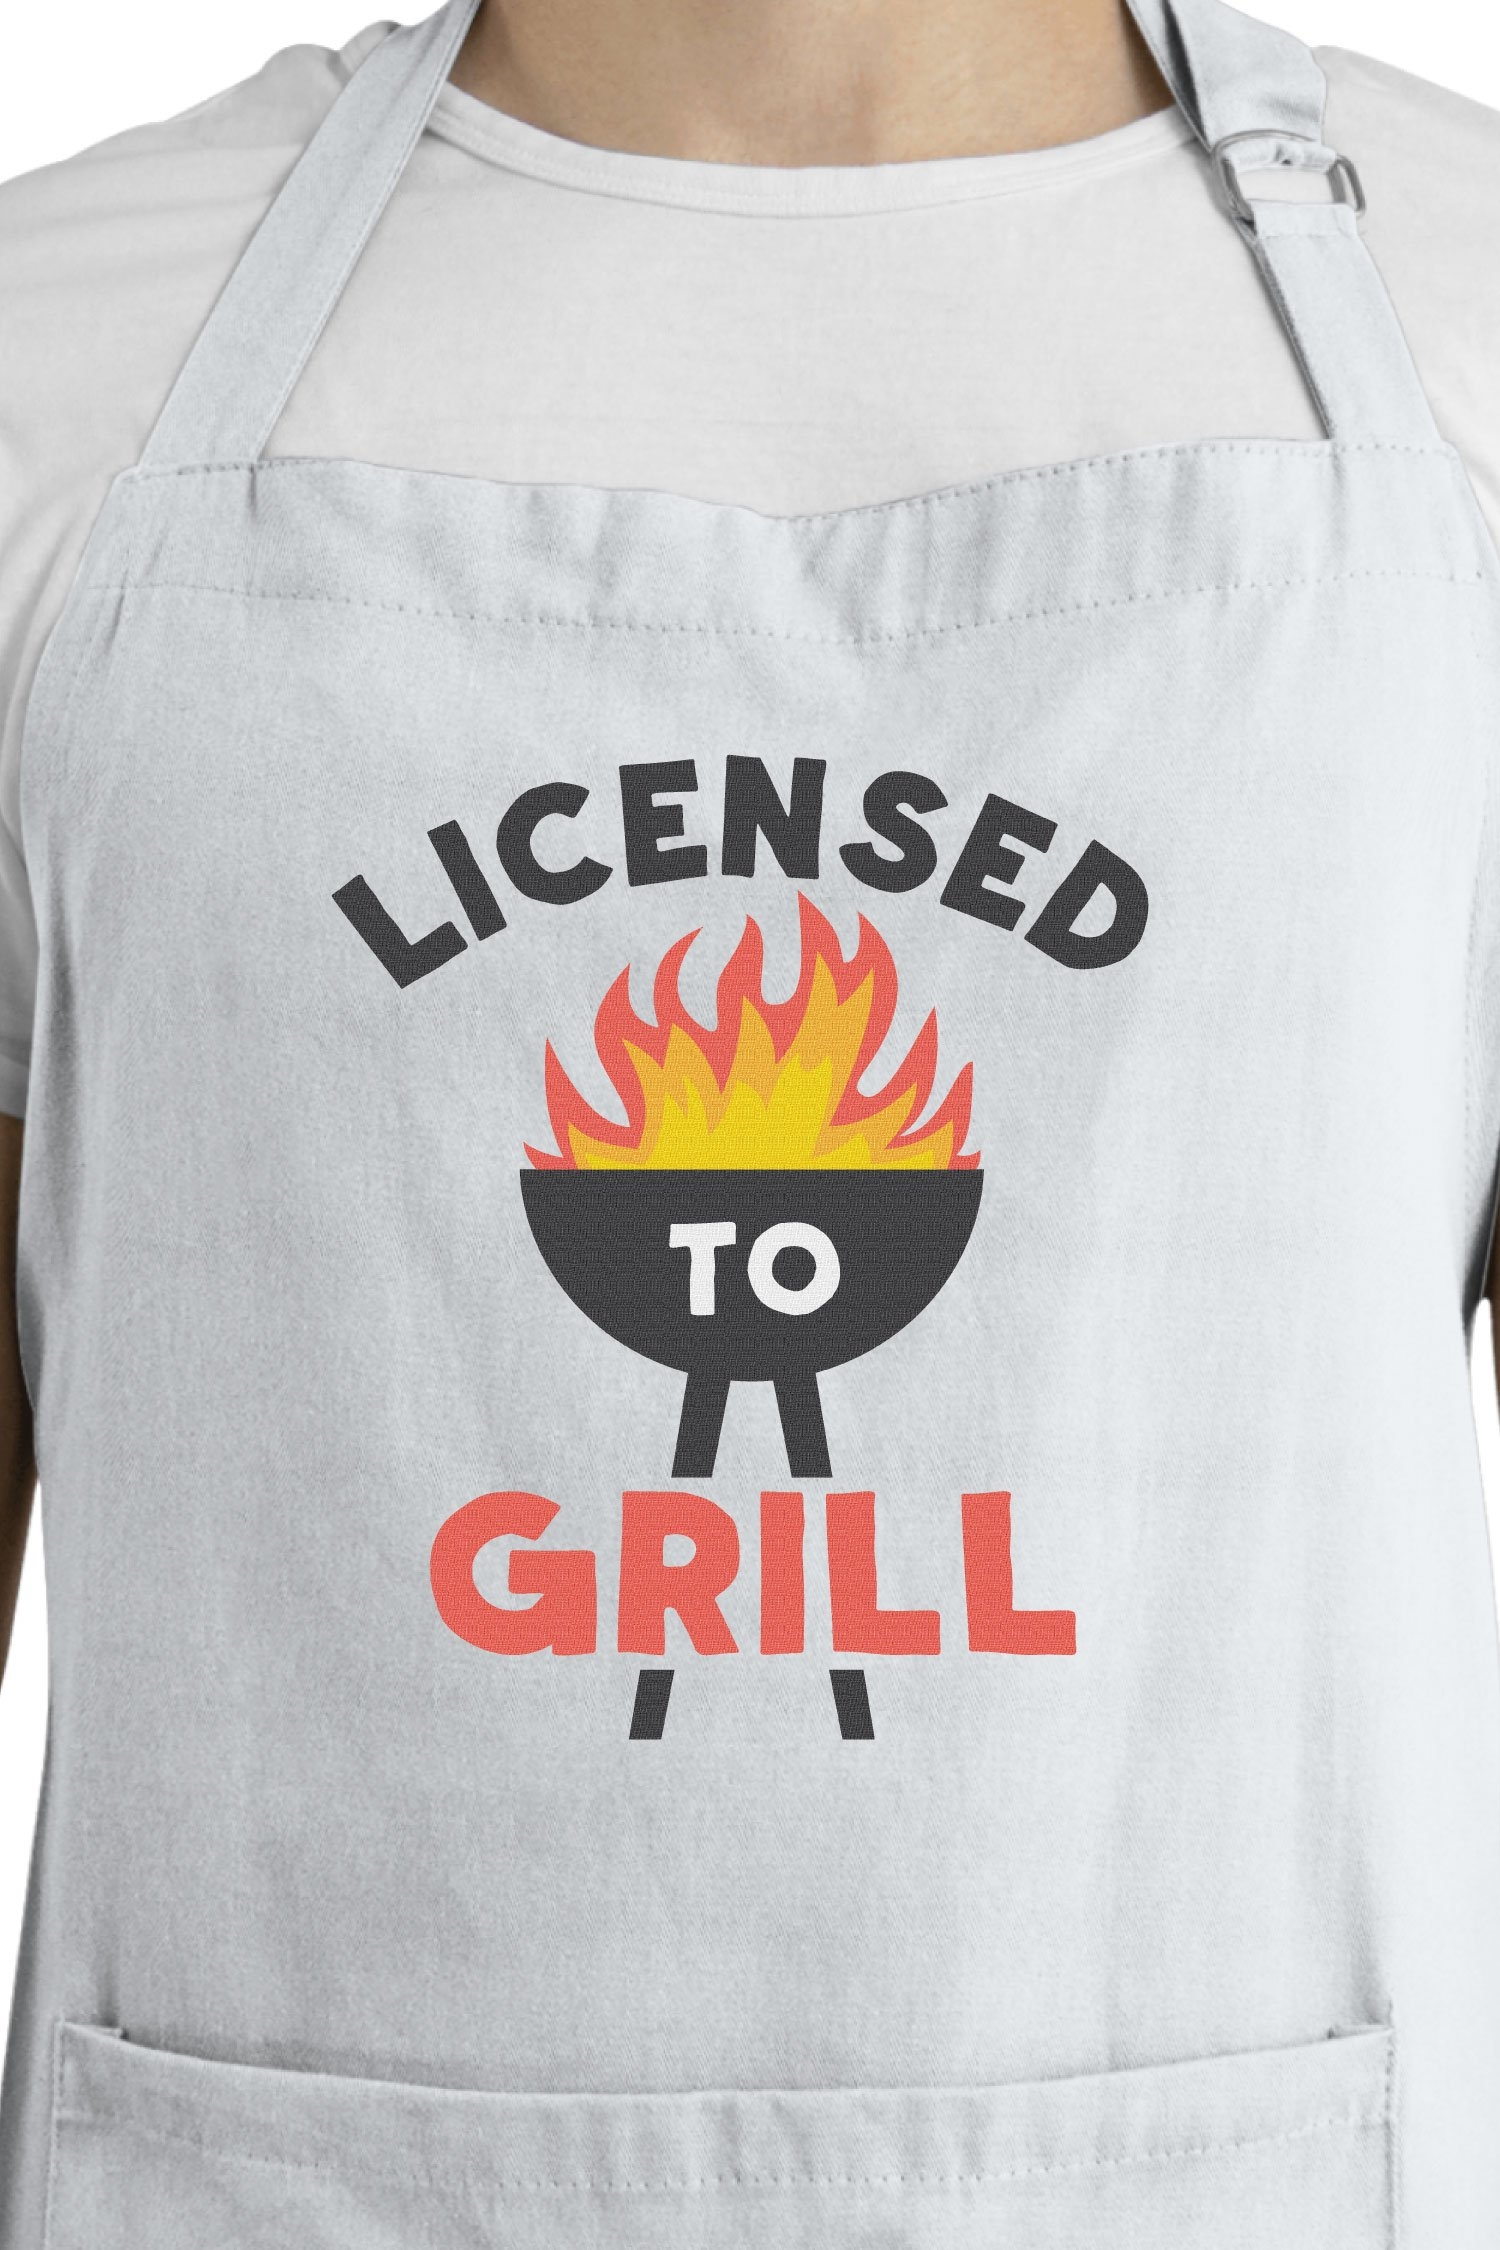 Barbecue SVGs for Cricut and Silhouette